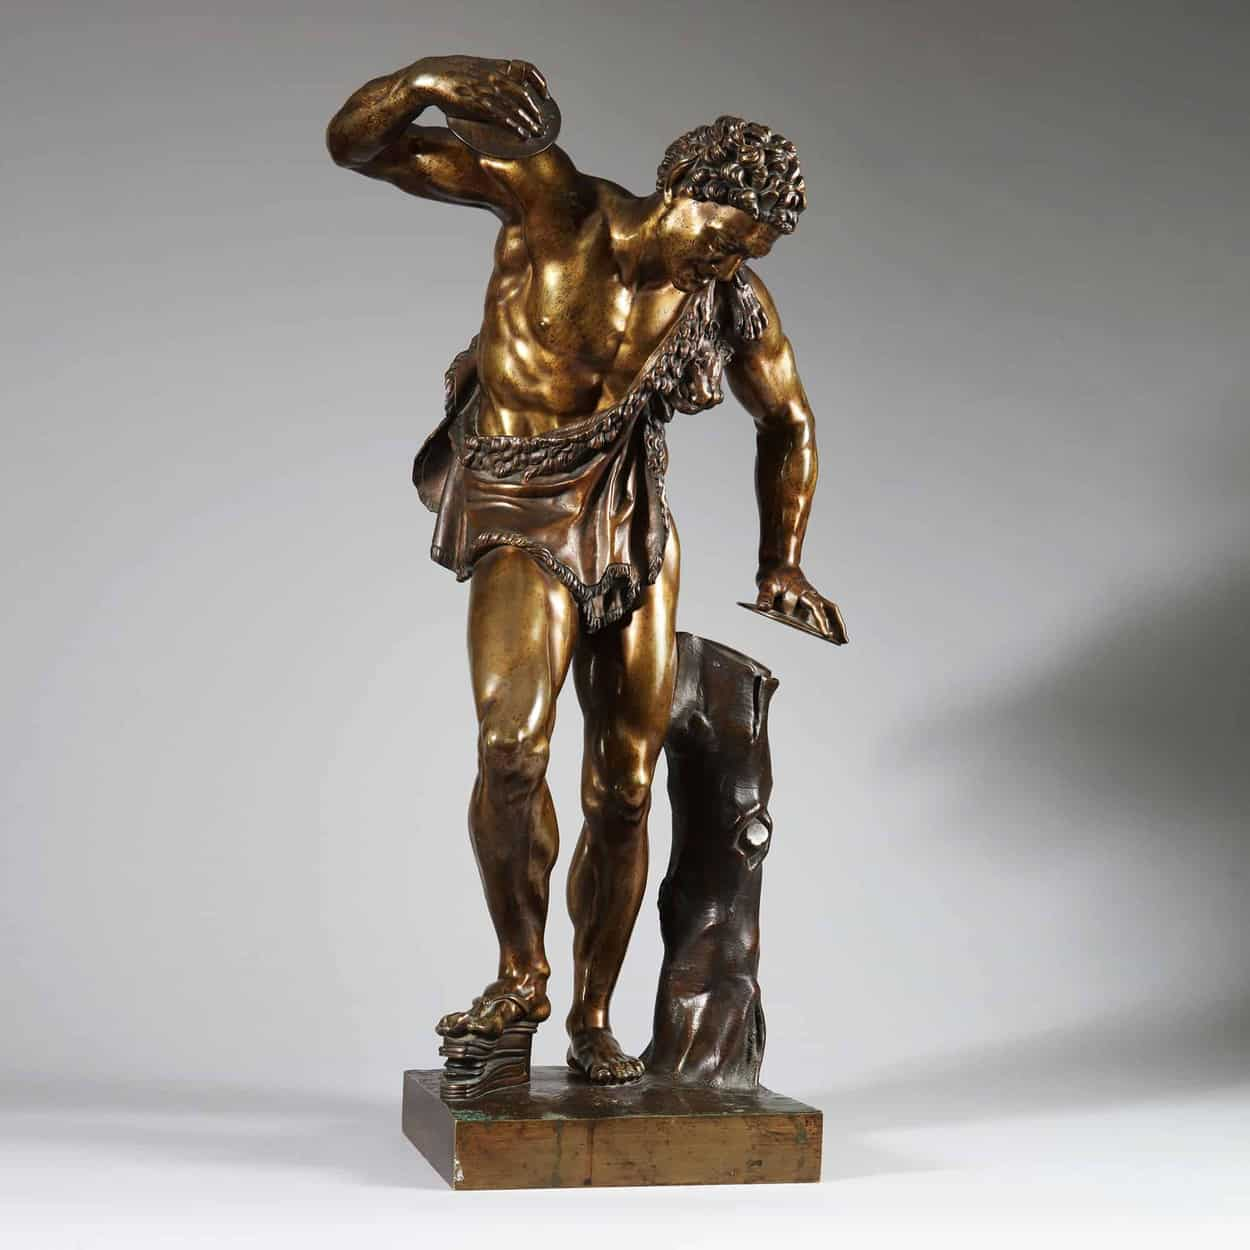 After The Antique Dancing Faun